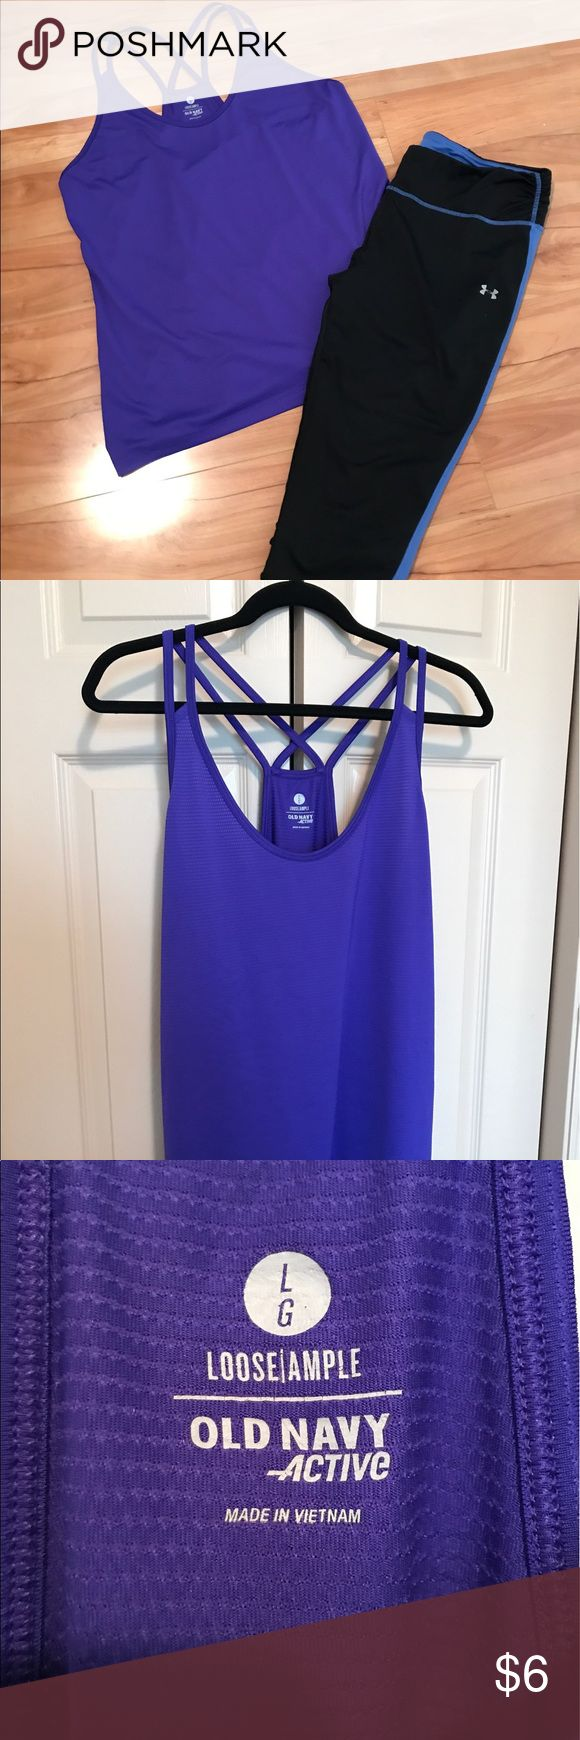 Purple Strappy Loose Workout Tank Super cute and strappy (the lastest trend!). It has a few little snags as noted in the photos. This beauty is stretch, loose and super flattering when worn with your fave leggings! Old Navy Tops Tank Tops